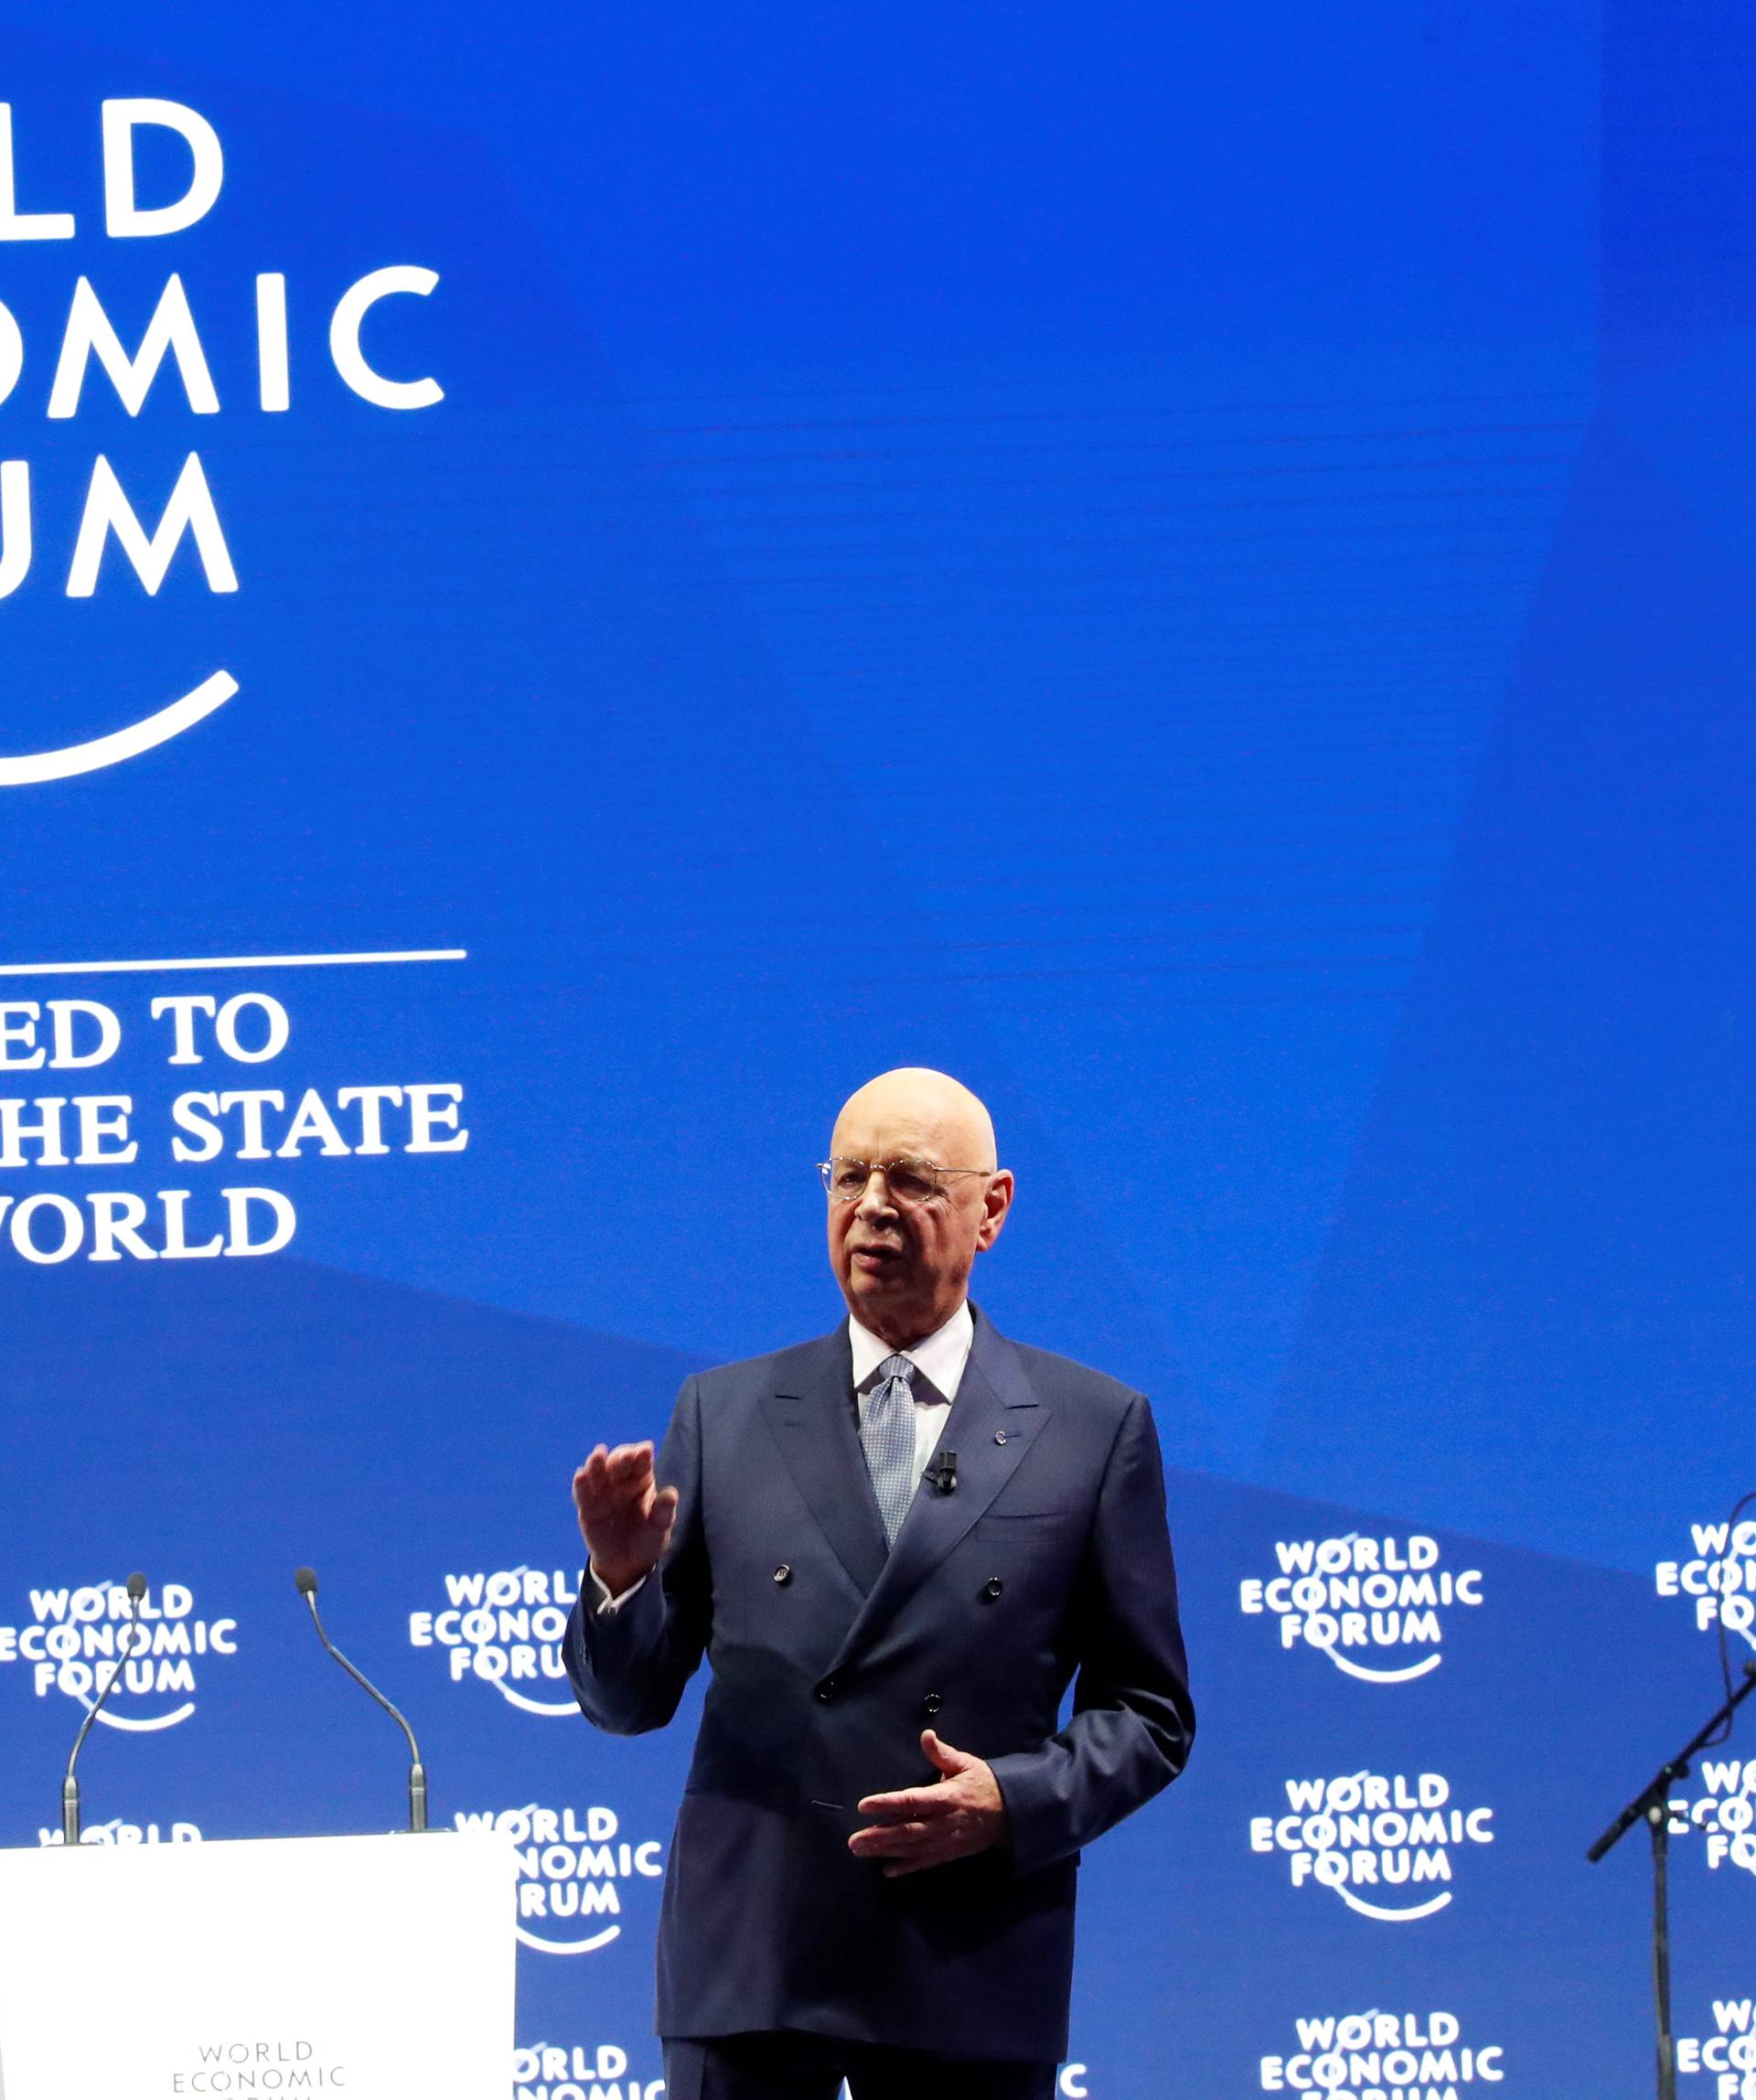 Klaus Schwab, Founder and Executive Chairman of the WEF, speaks during the opening session of the World Economic Forum (WEF) annual meeting in Davos